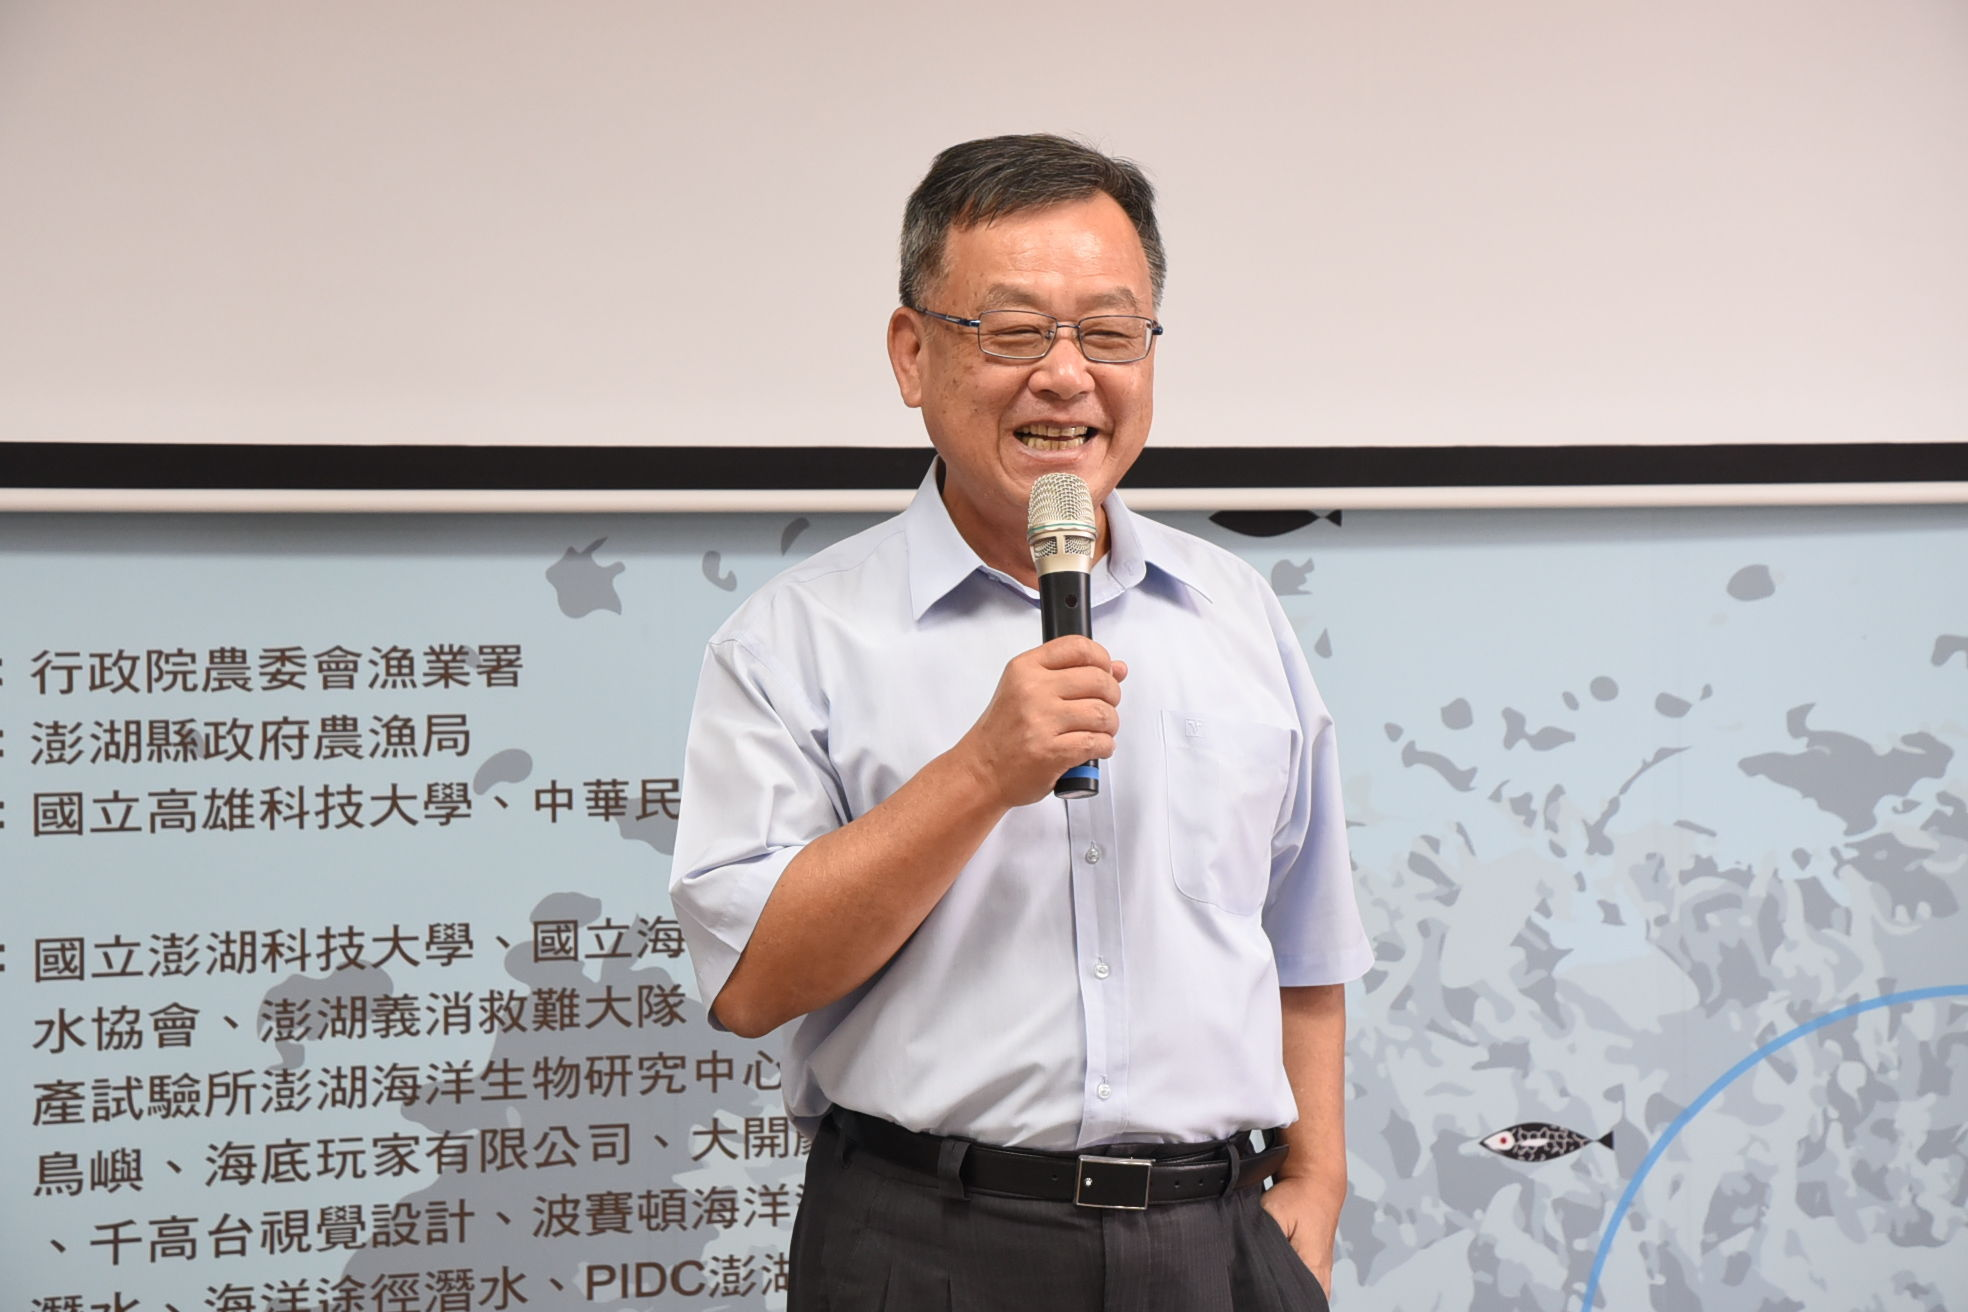 County Mayor Lai addressed the occasion